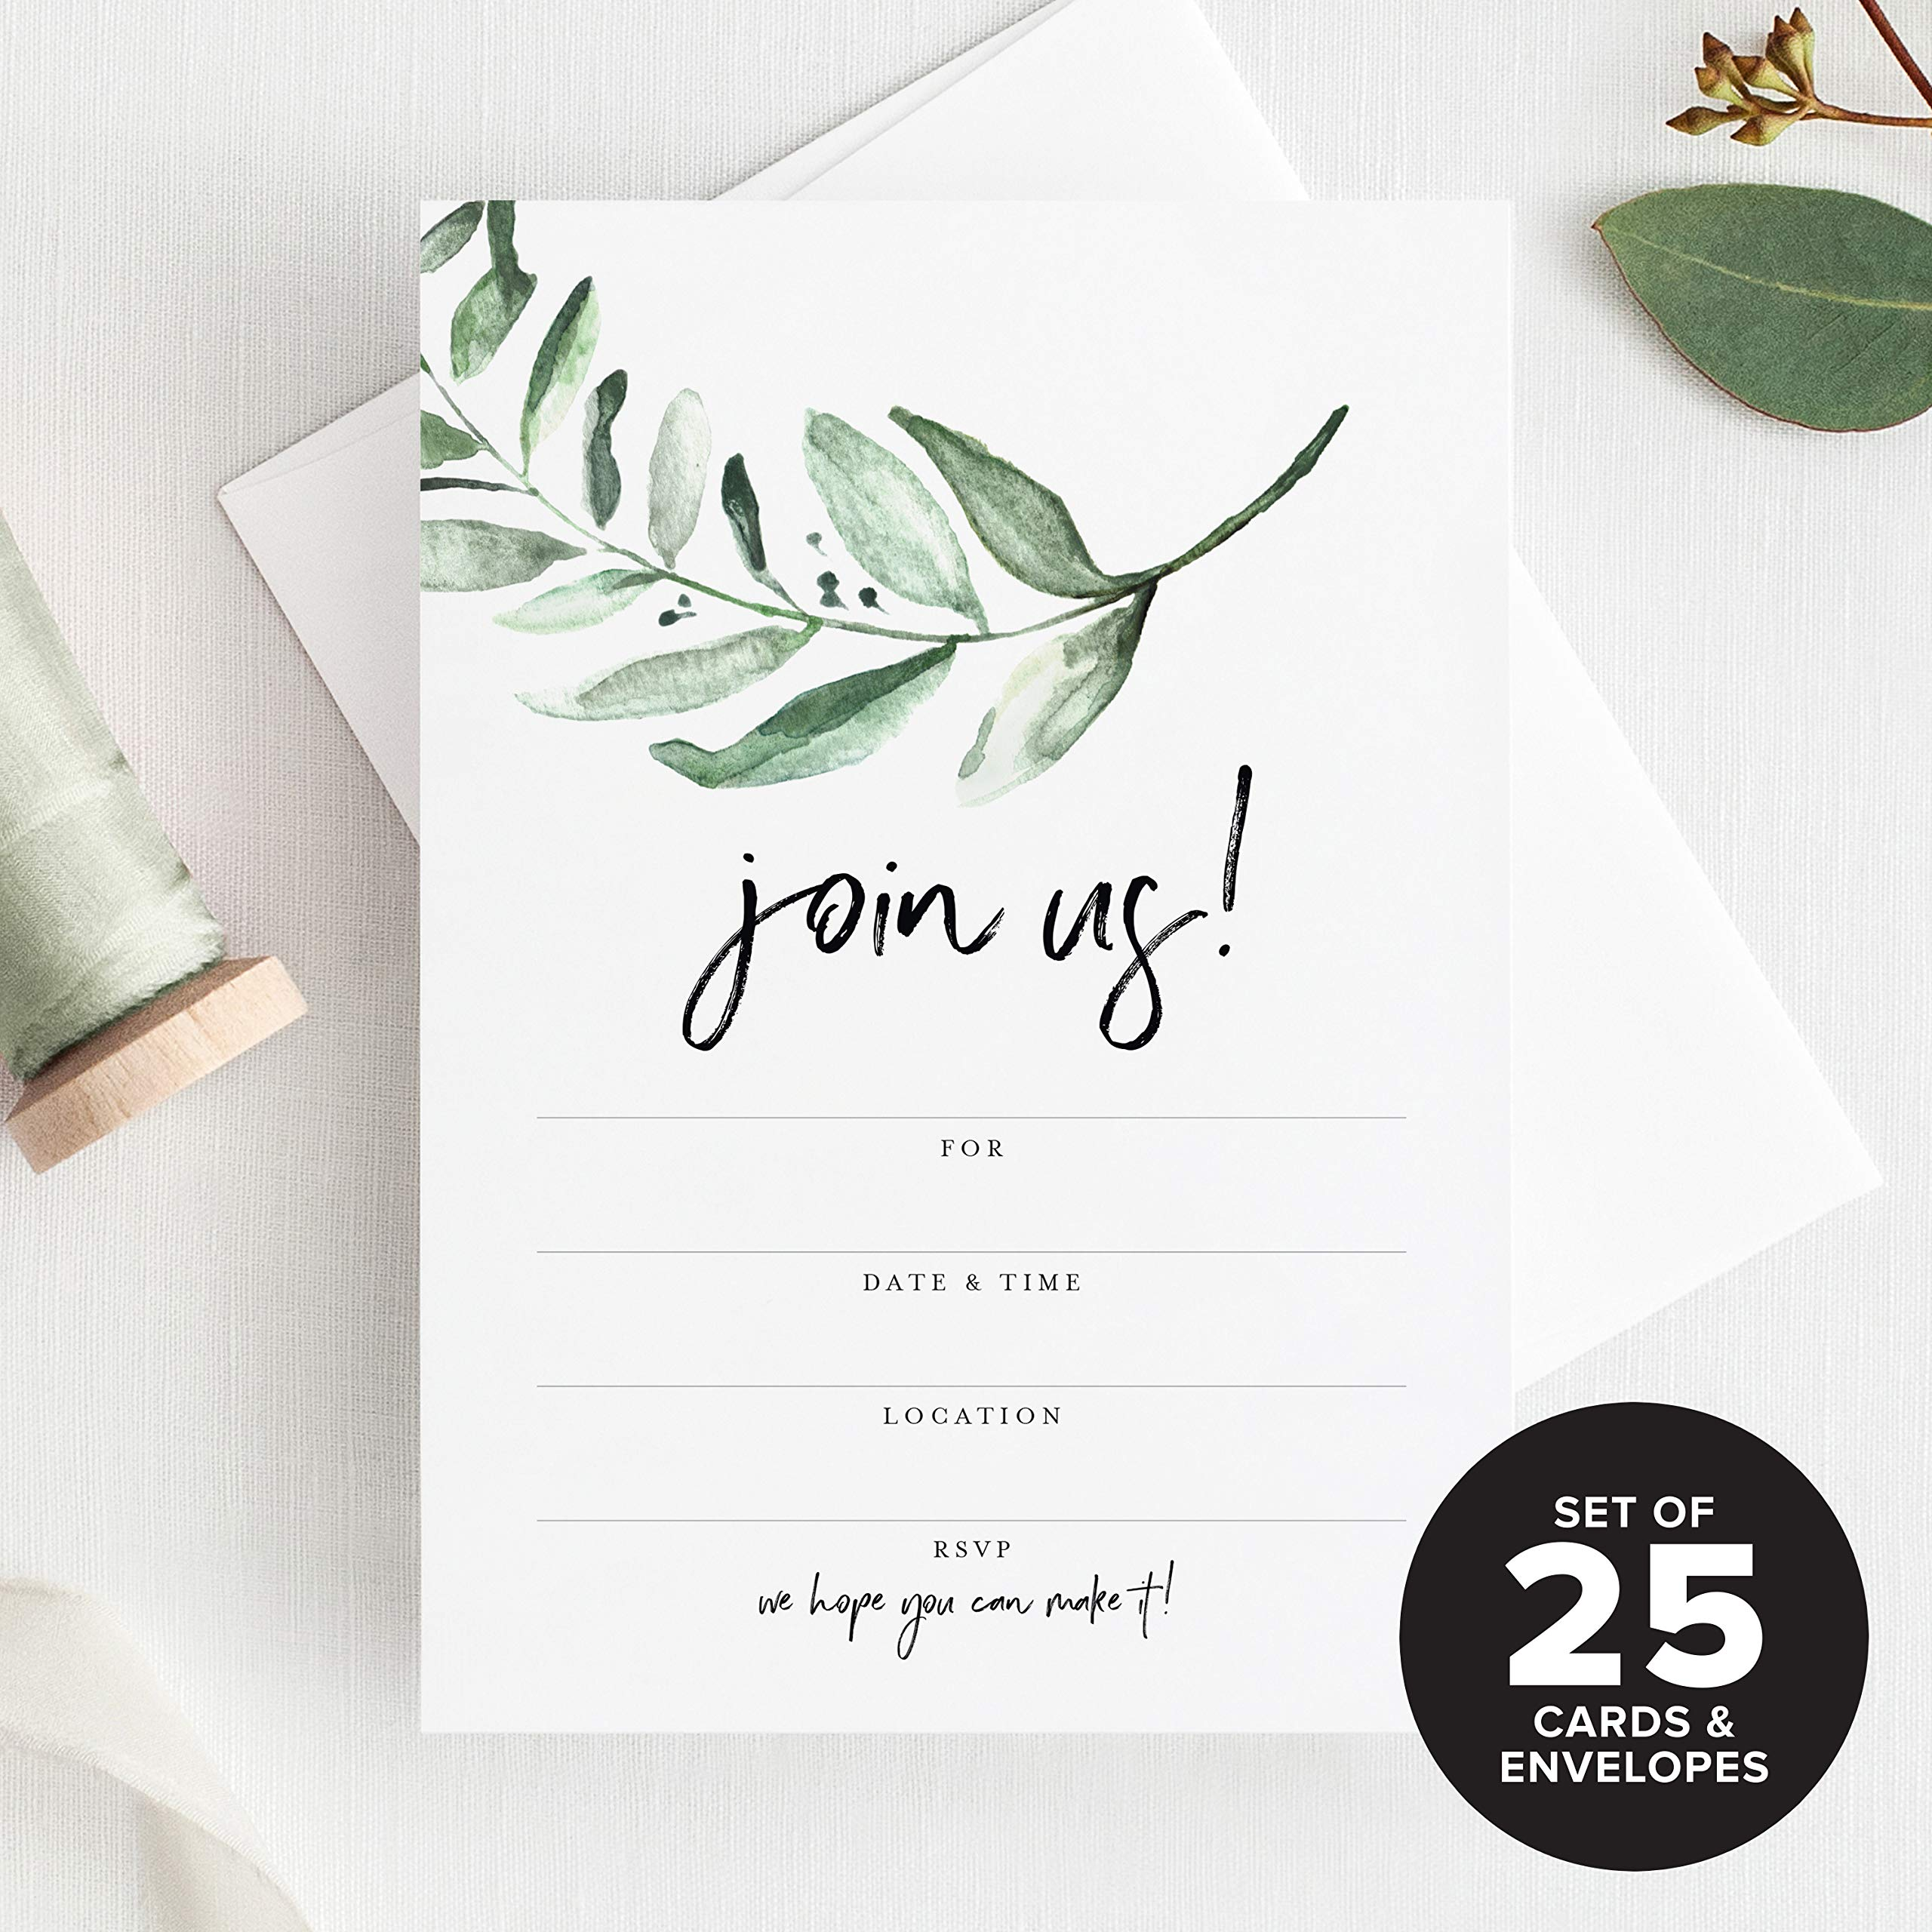 7525447f8771 Bliss Paper Boutique 25 Invitations with Envelopes for All Occasions